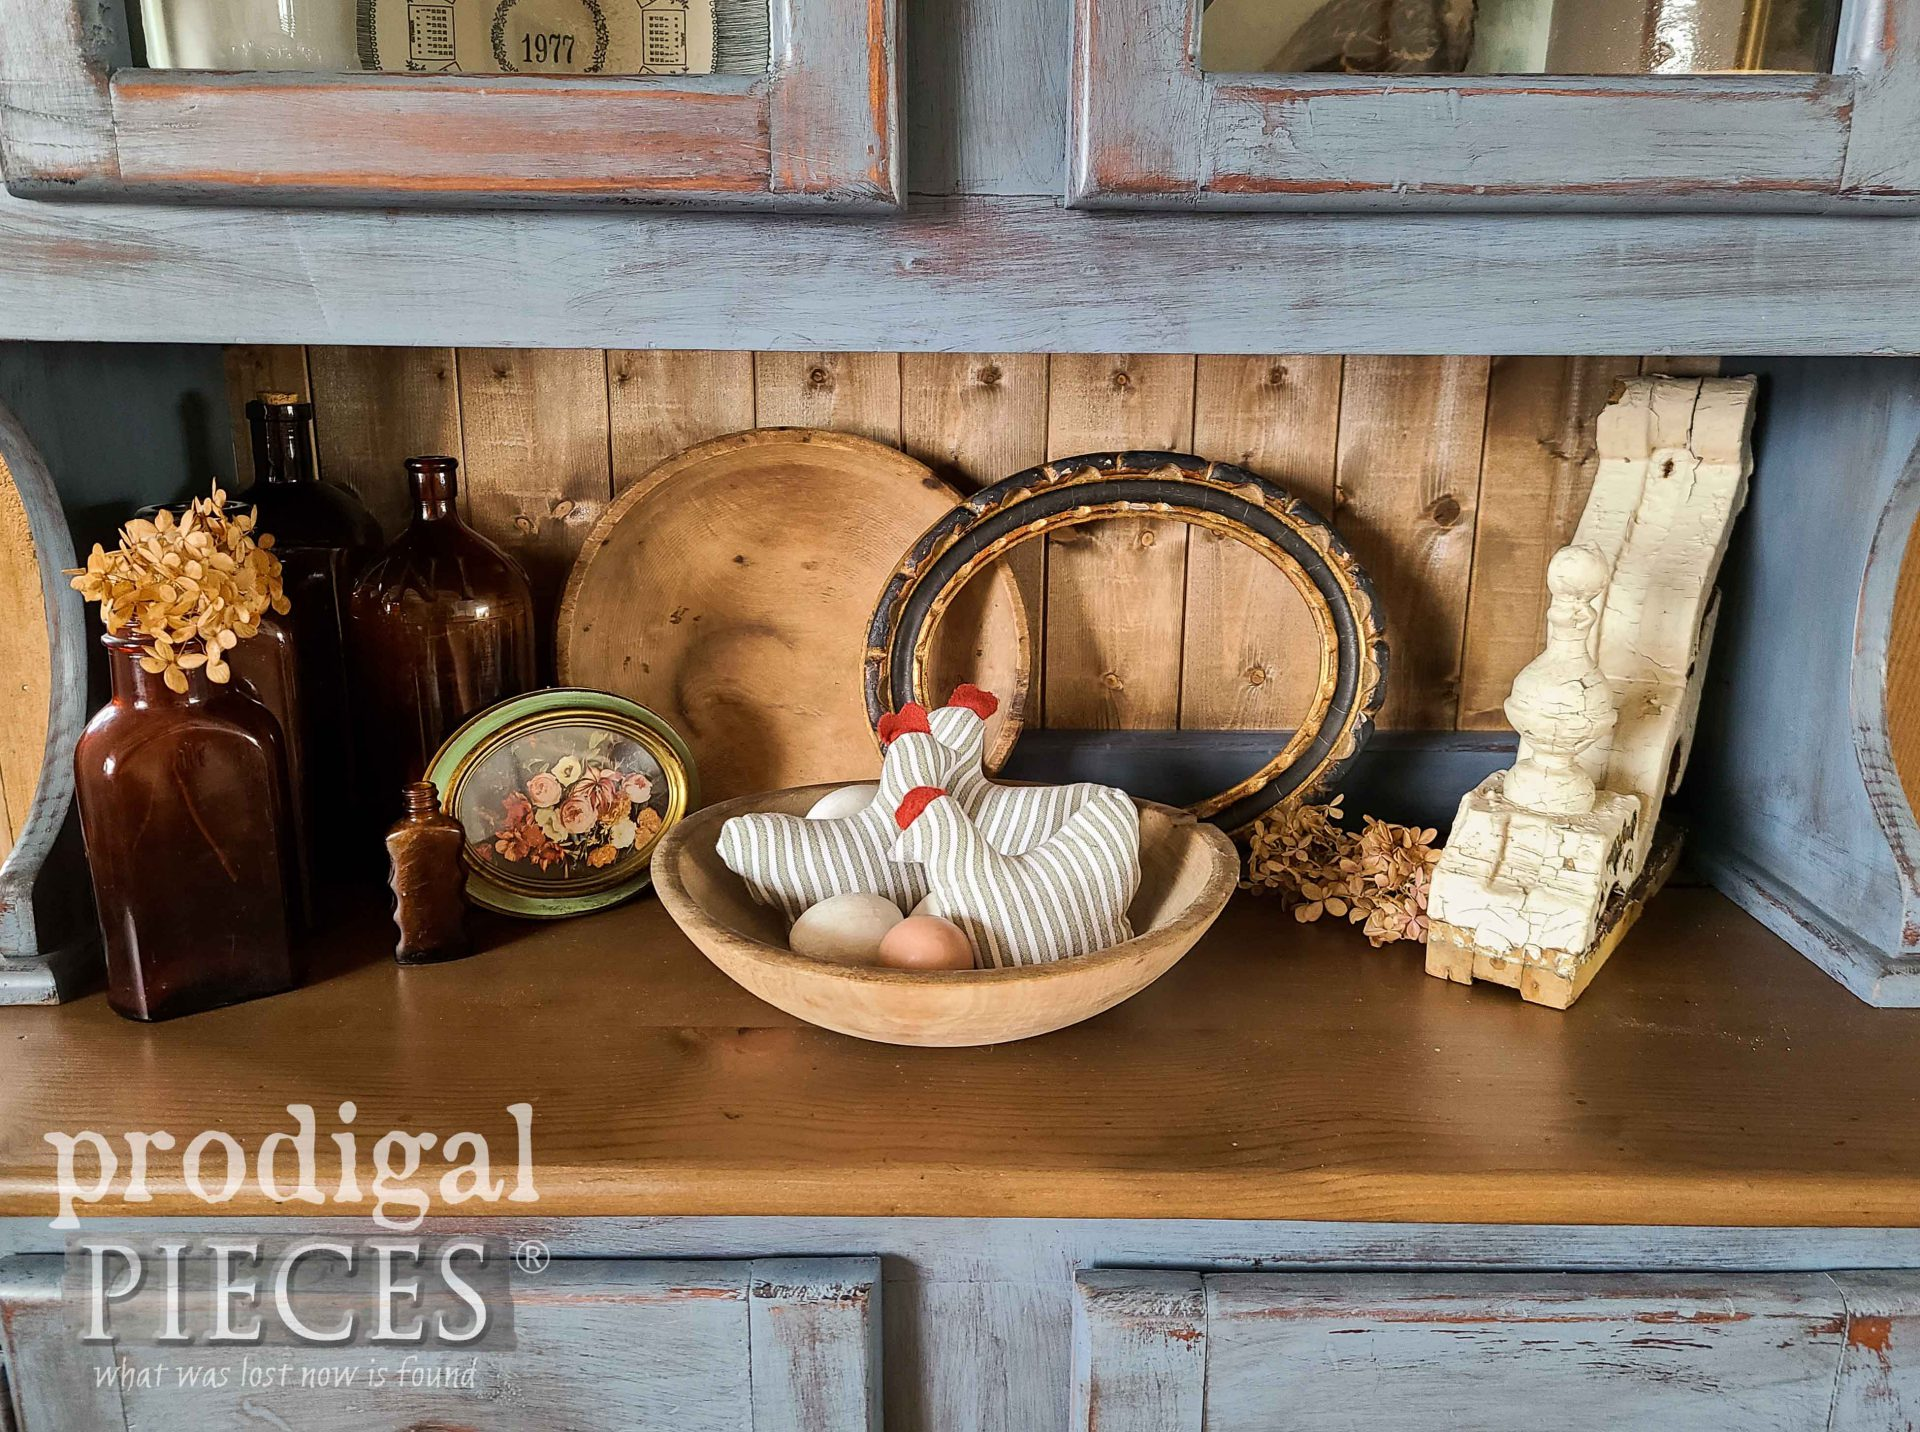 DIY Farmhouse Bowl Filler Hens with Eggs by Larissa of Prodigal Pieces | prodigalpieces.com #prodigalpieces #diy #home #homedecor #refashion